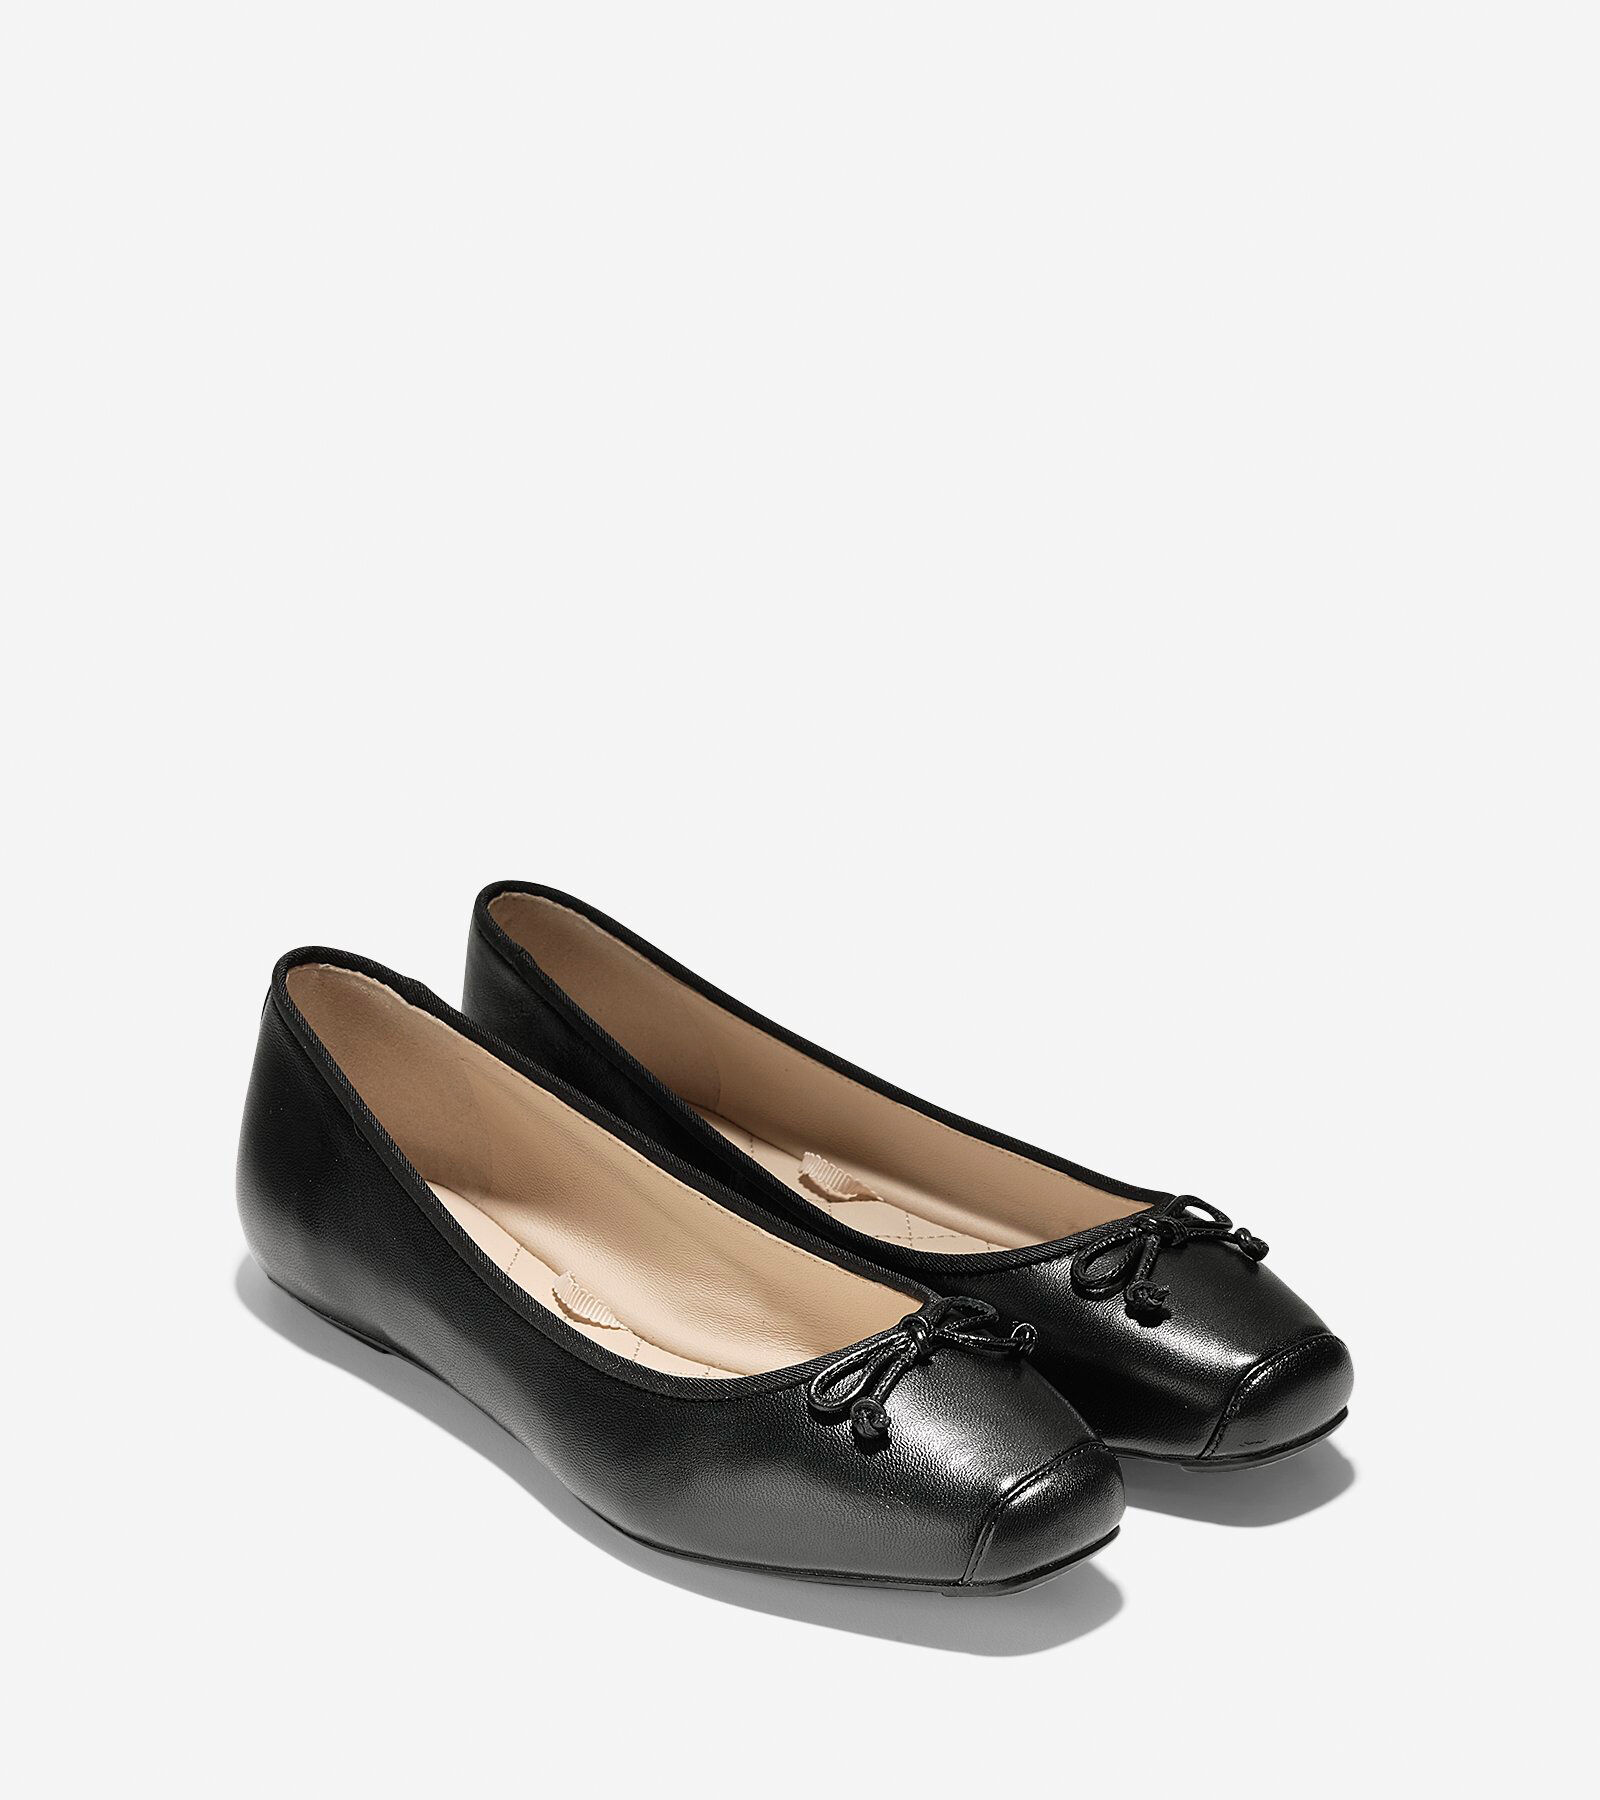 Cole Haan Downtown Ballet wsM83r